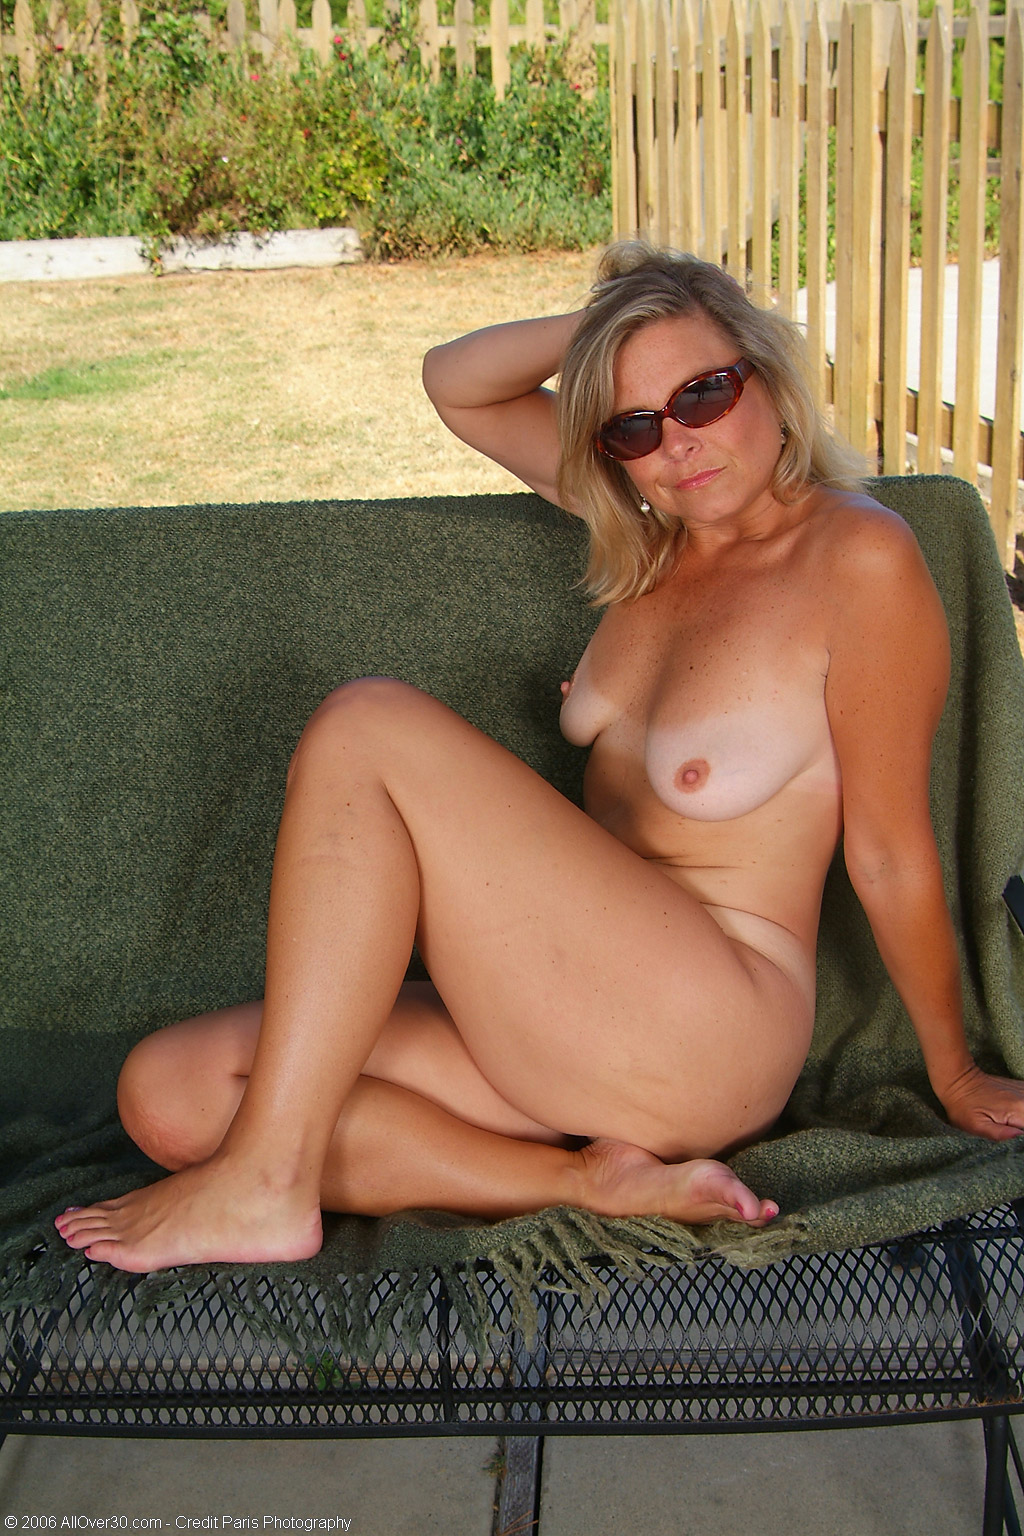 all over  cricket mature nude pictures